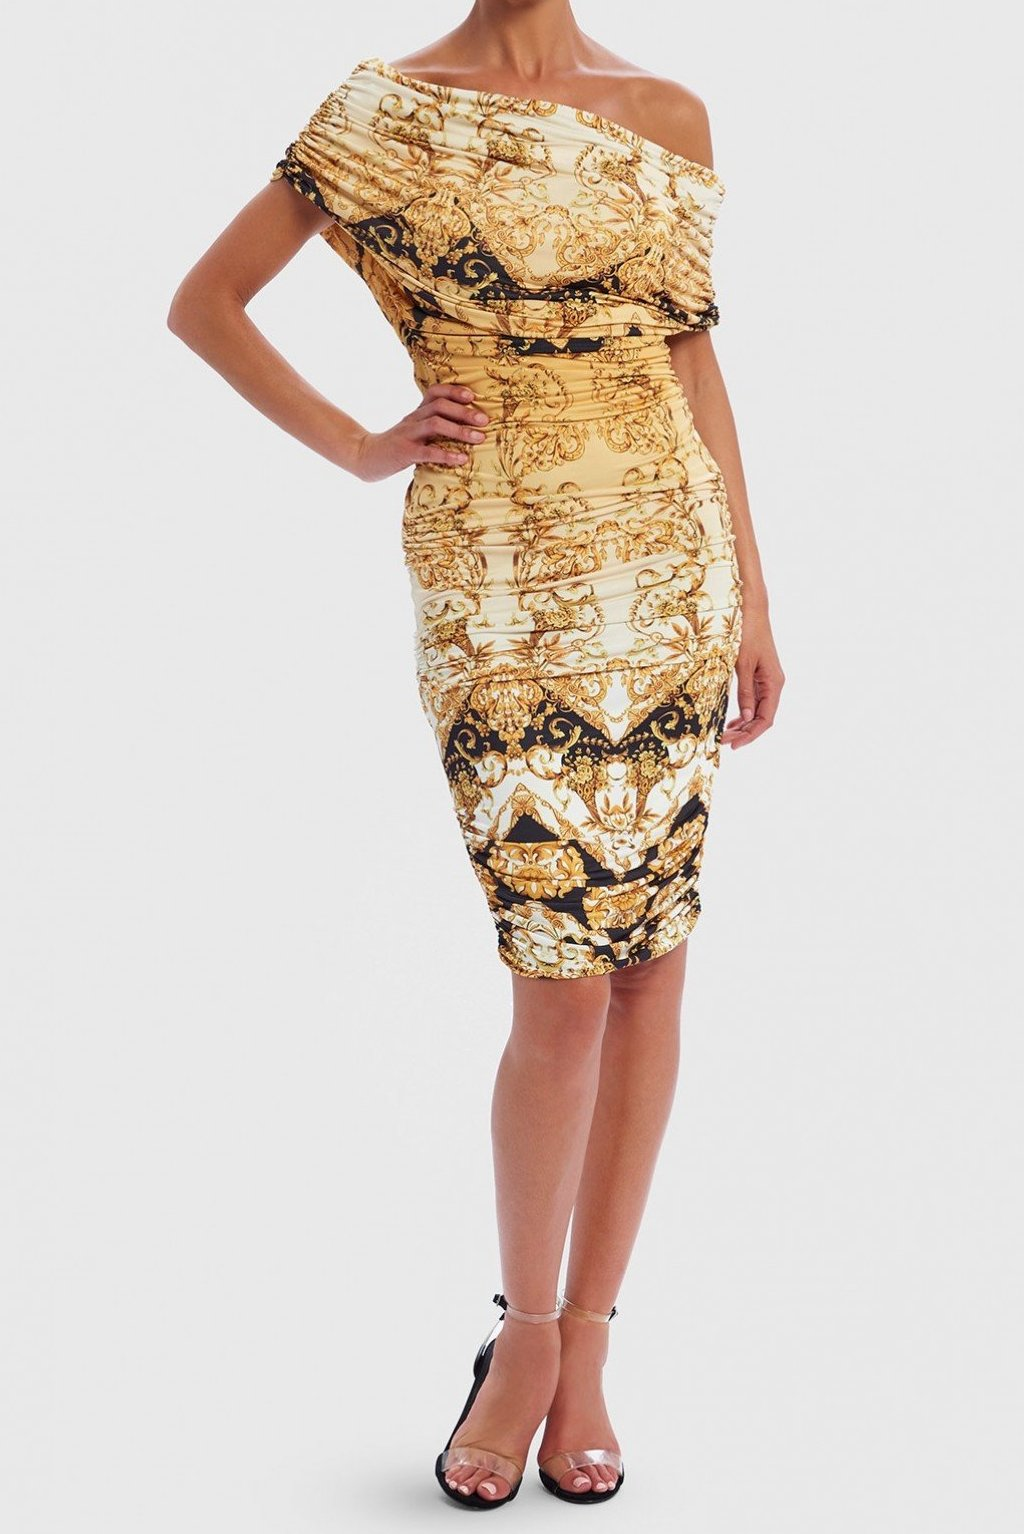 FOREVER UNIQUE STORMI BAROQUE PRINT ONE-SHOULDER BODYCON MIDI DRESS - GOLD/BLACK